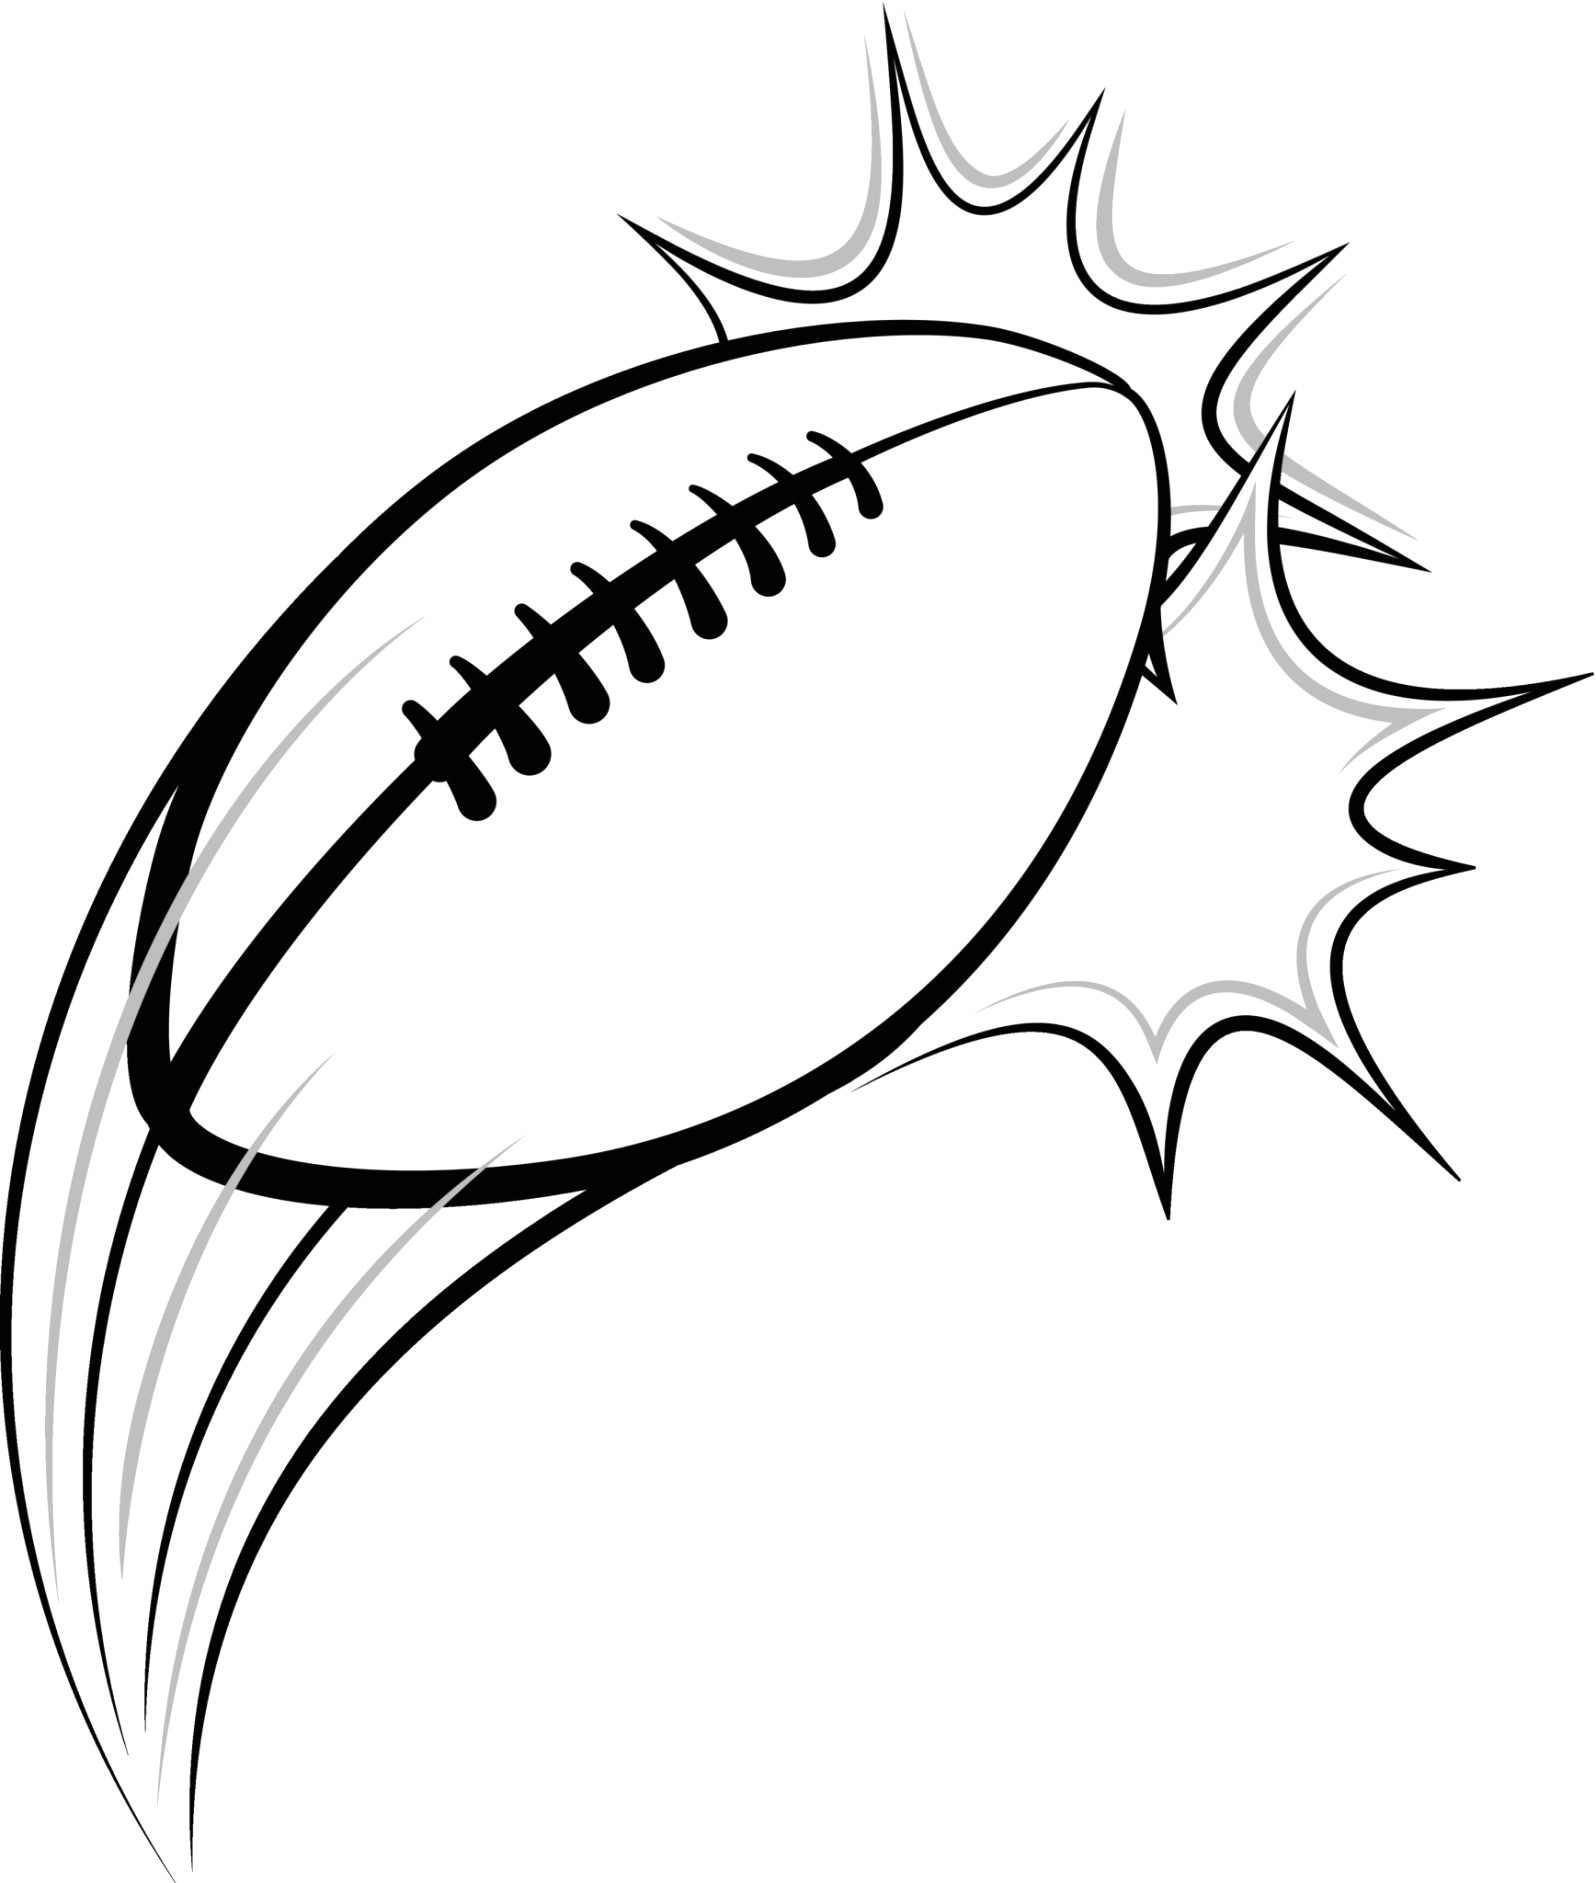 1596x1883 Football Drawing Easy For Free Download